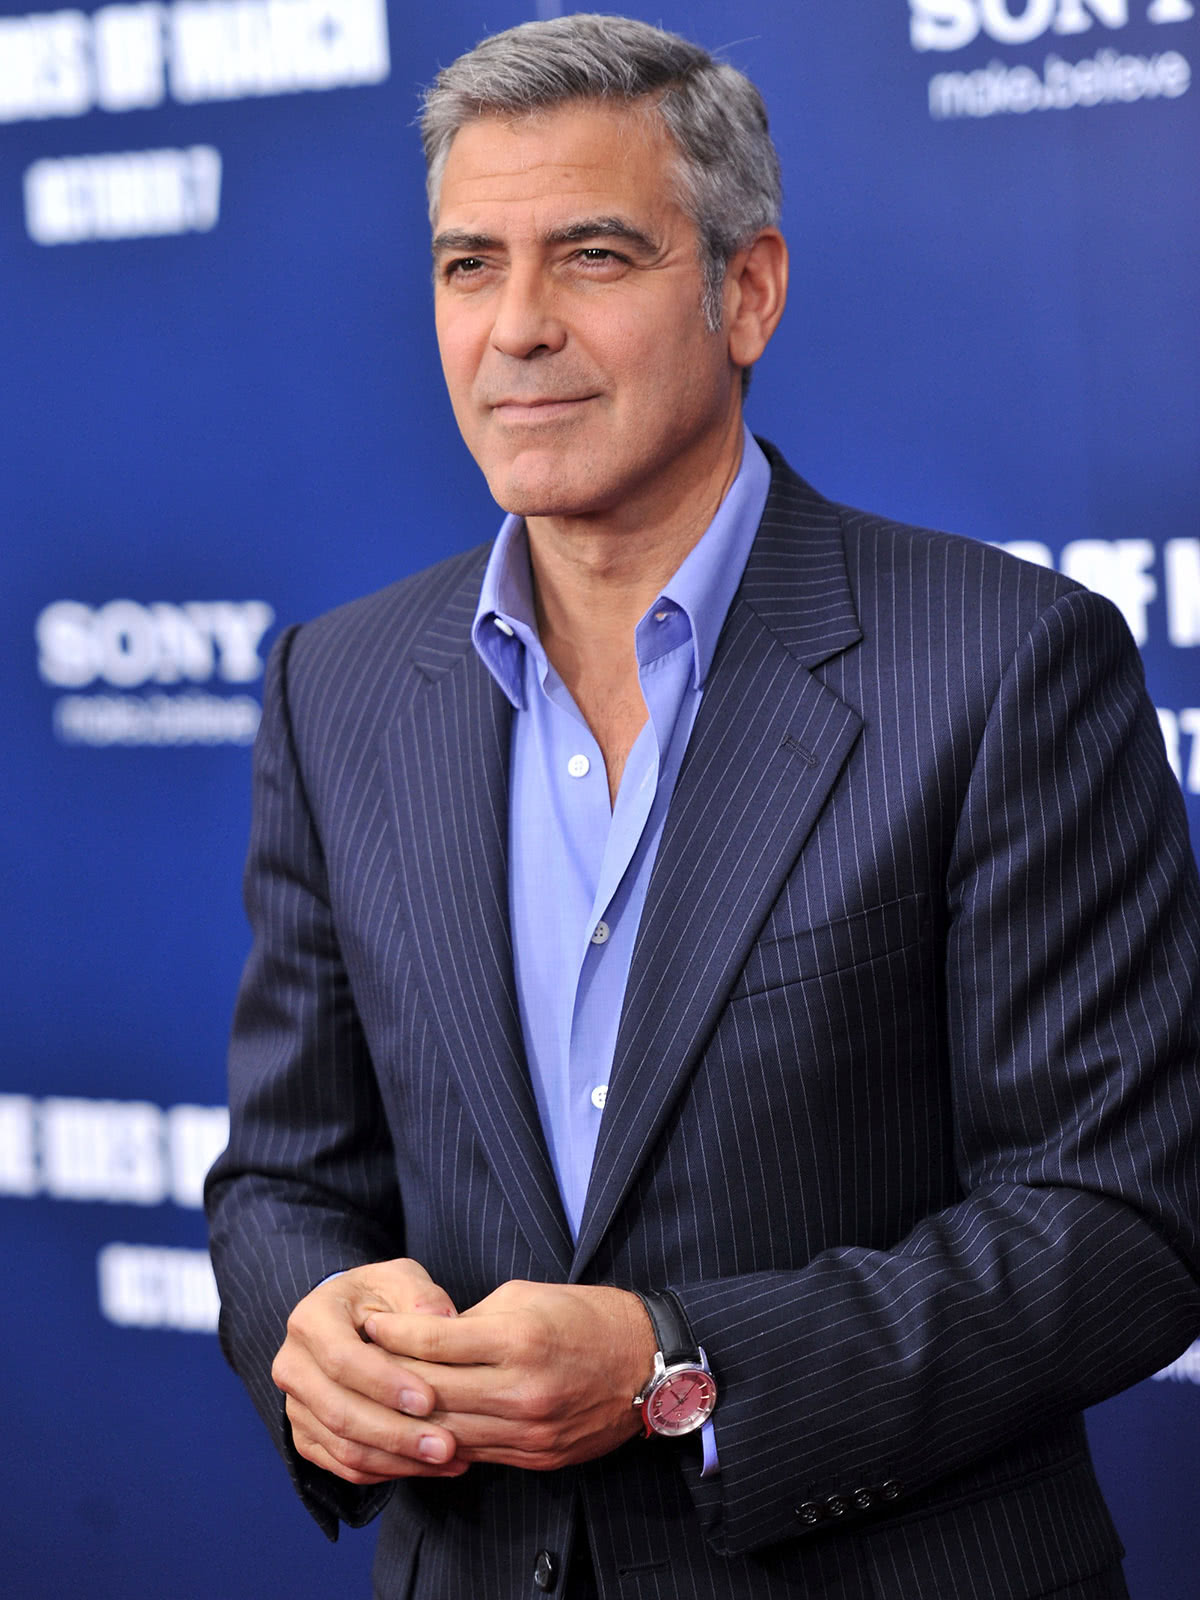 business casual men dress code guide George Clooney style - Luxe Digital